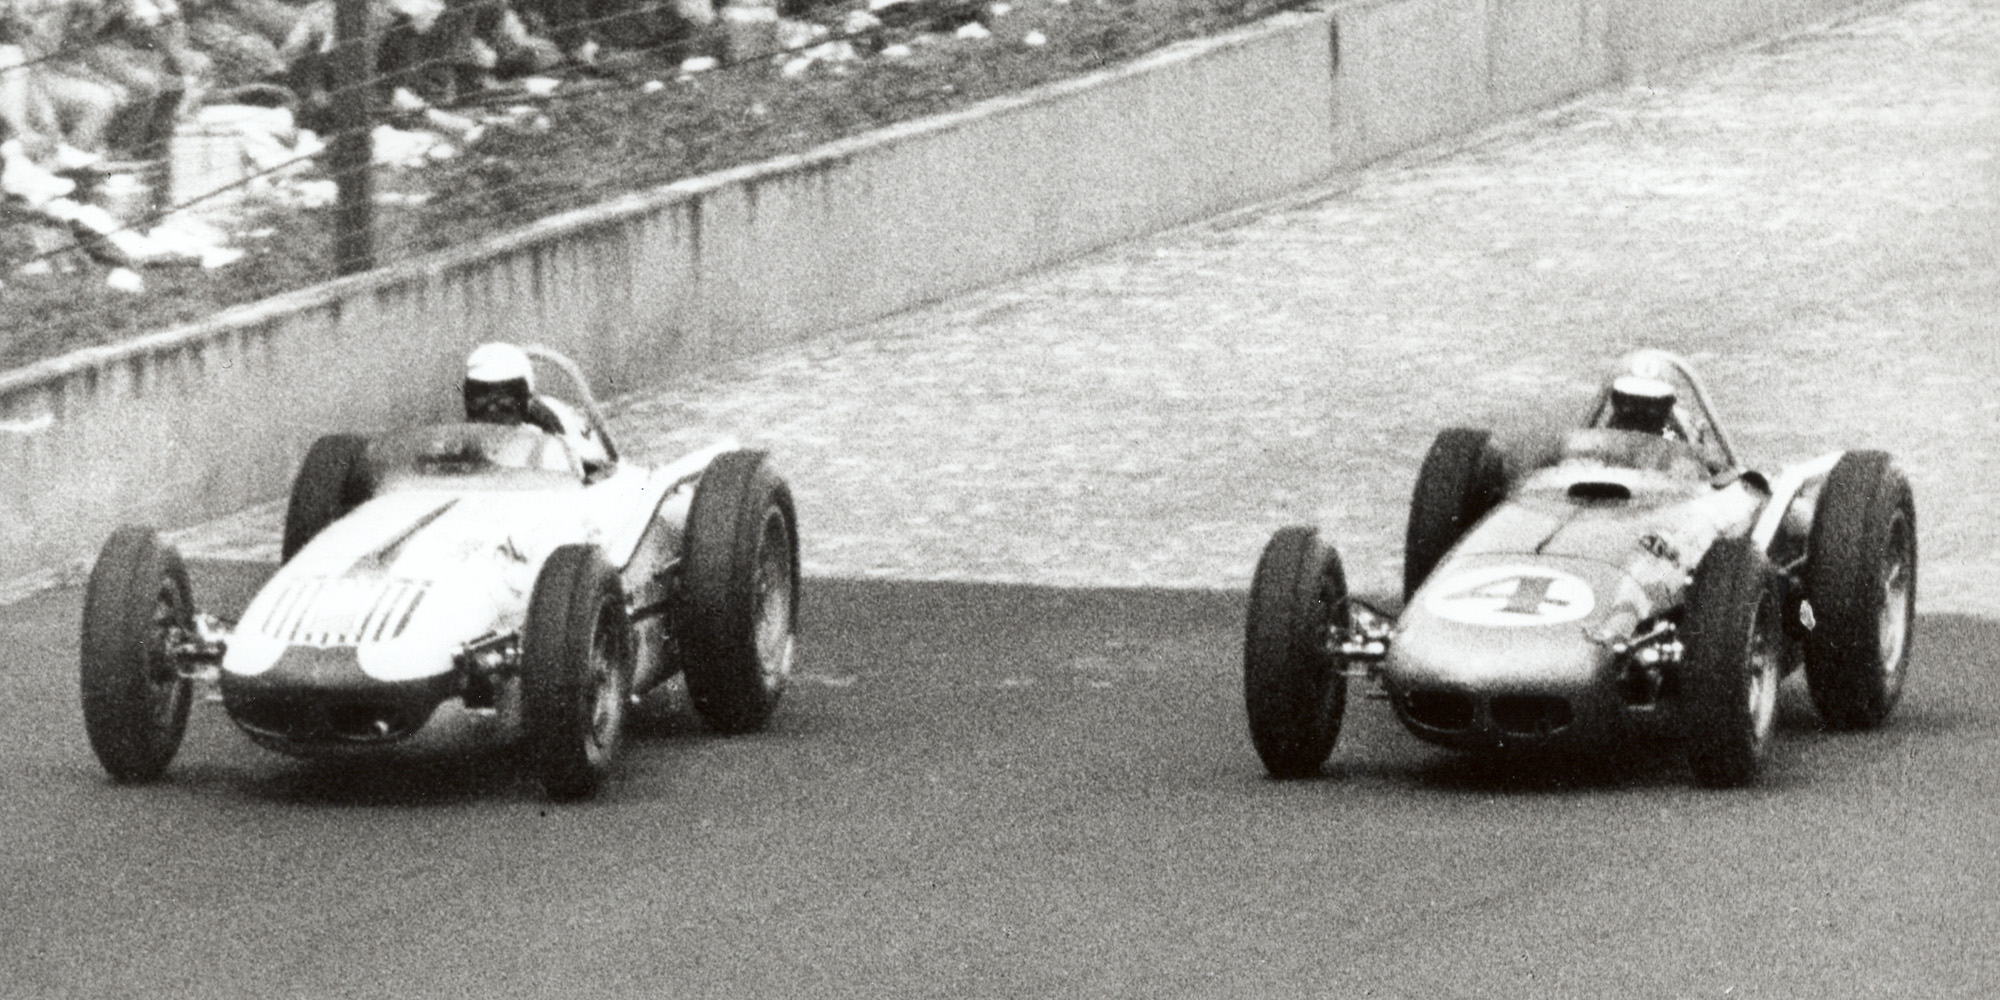 Jim Rathmann and Rodger Ward almost side by side during the 1960 Indy 500